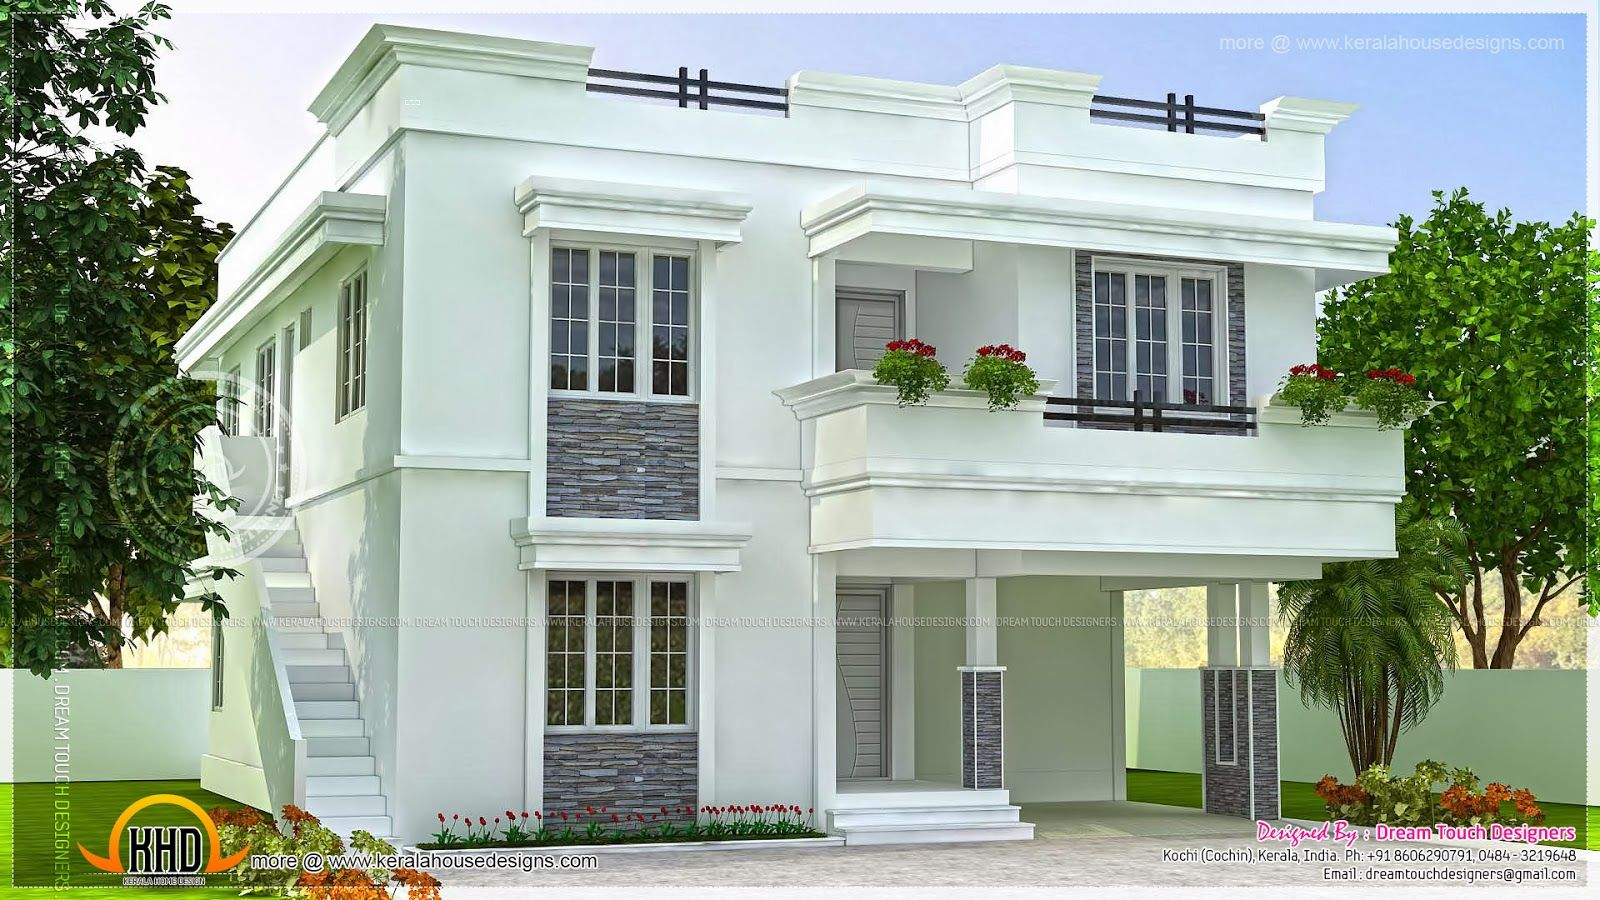 Modern beautiful home modern beautiful home design indian Indian home design